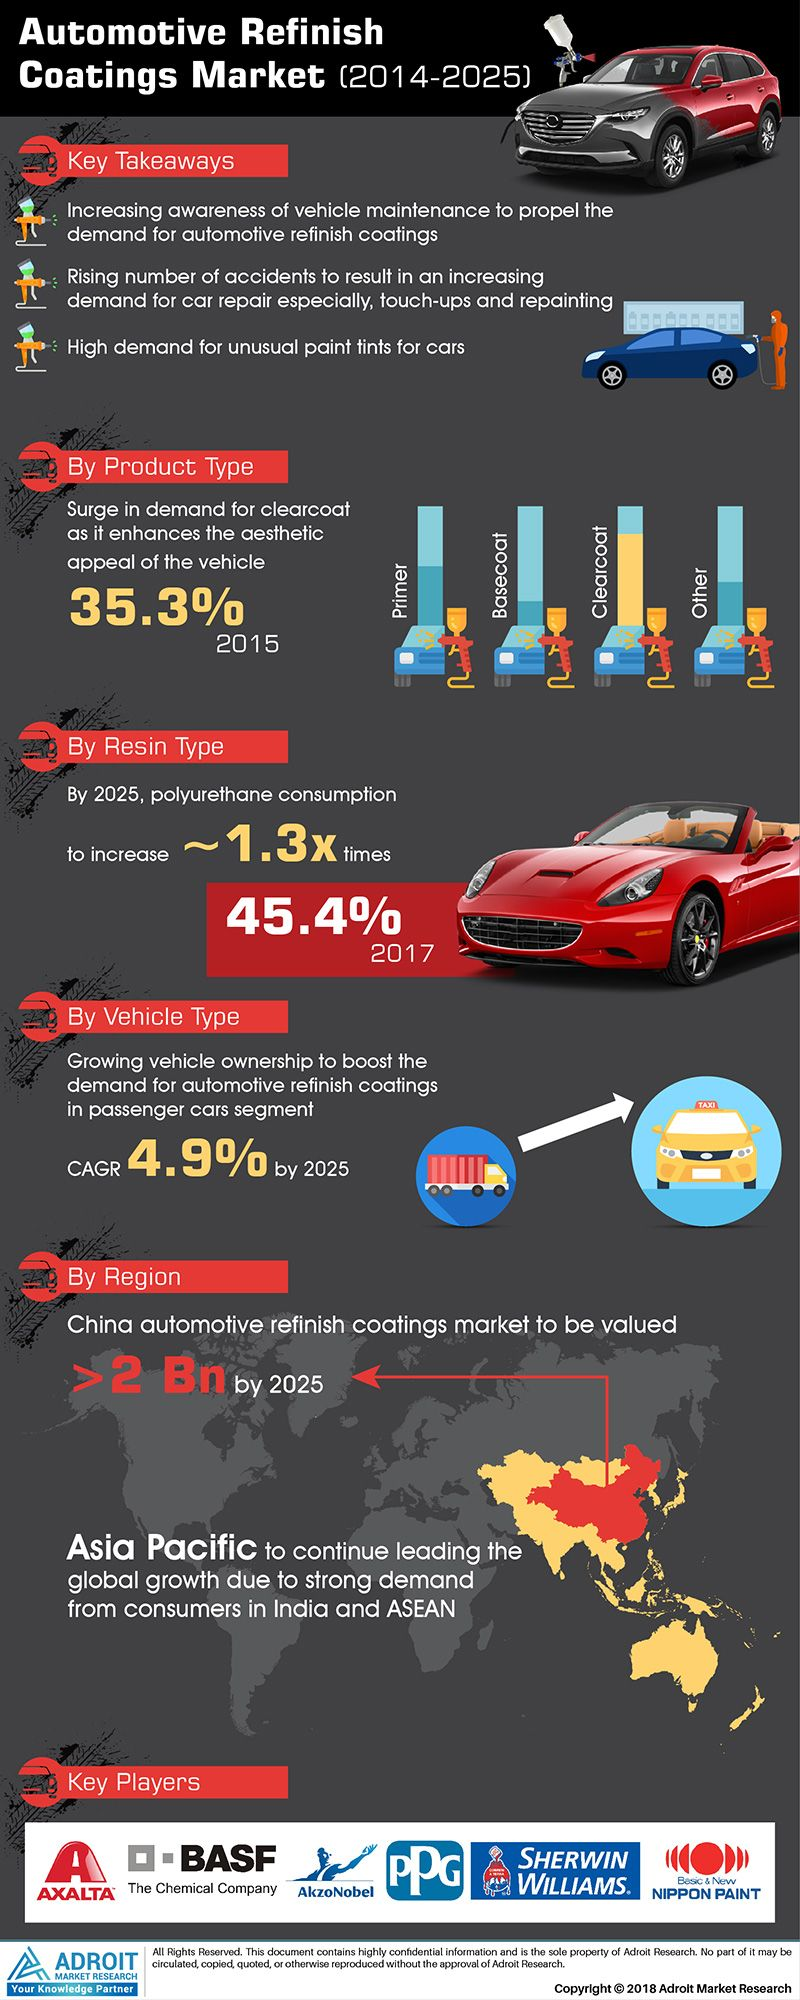 Automotive Refinish Coatings Market Growing Vehicle Ownership In Passenger Cars Segment To Rise At 4 Workplace Technology Business Opportunities Share Market